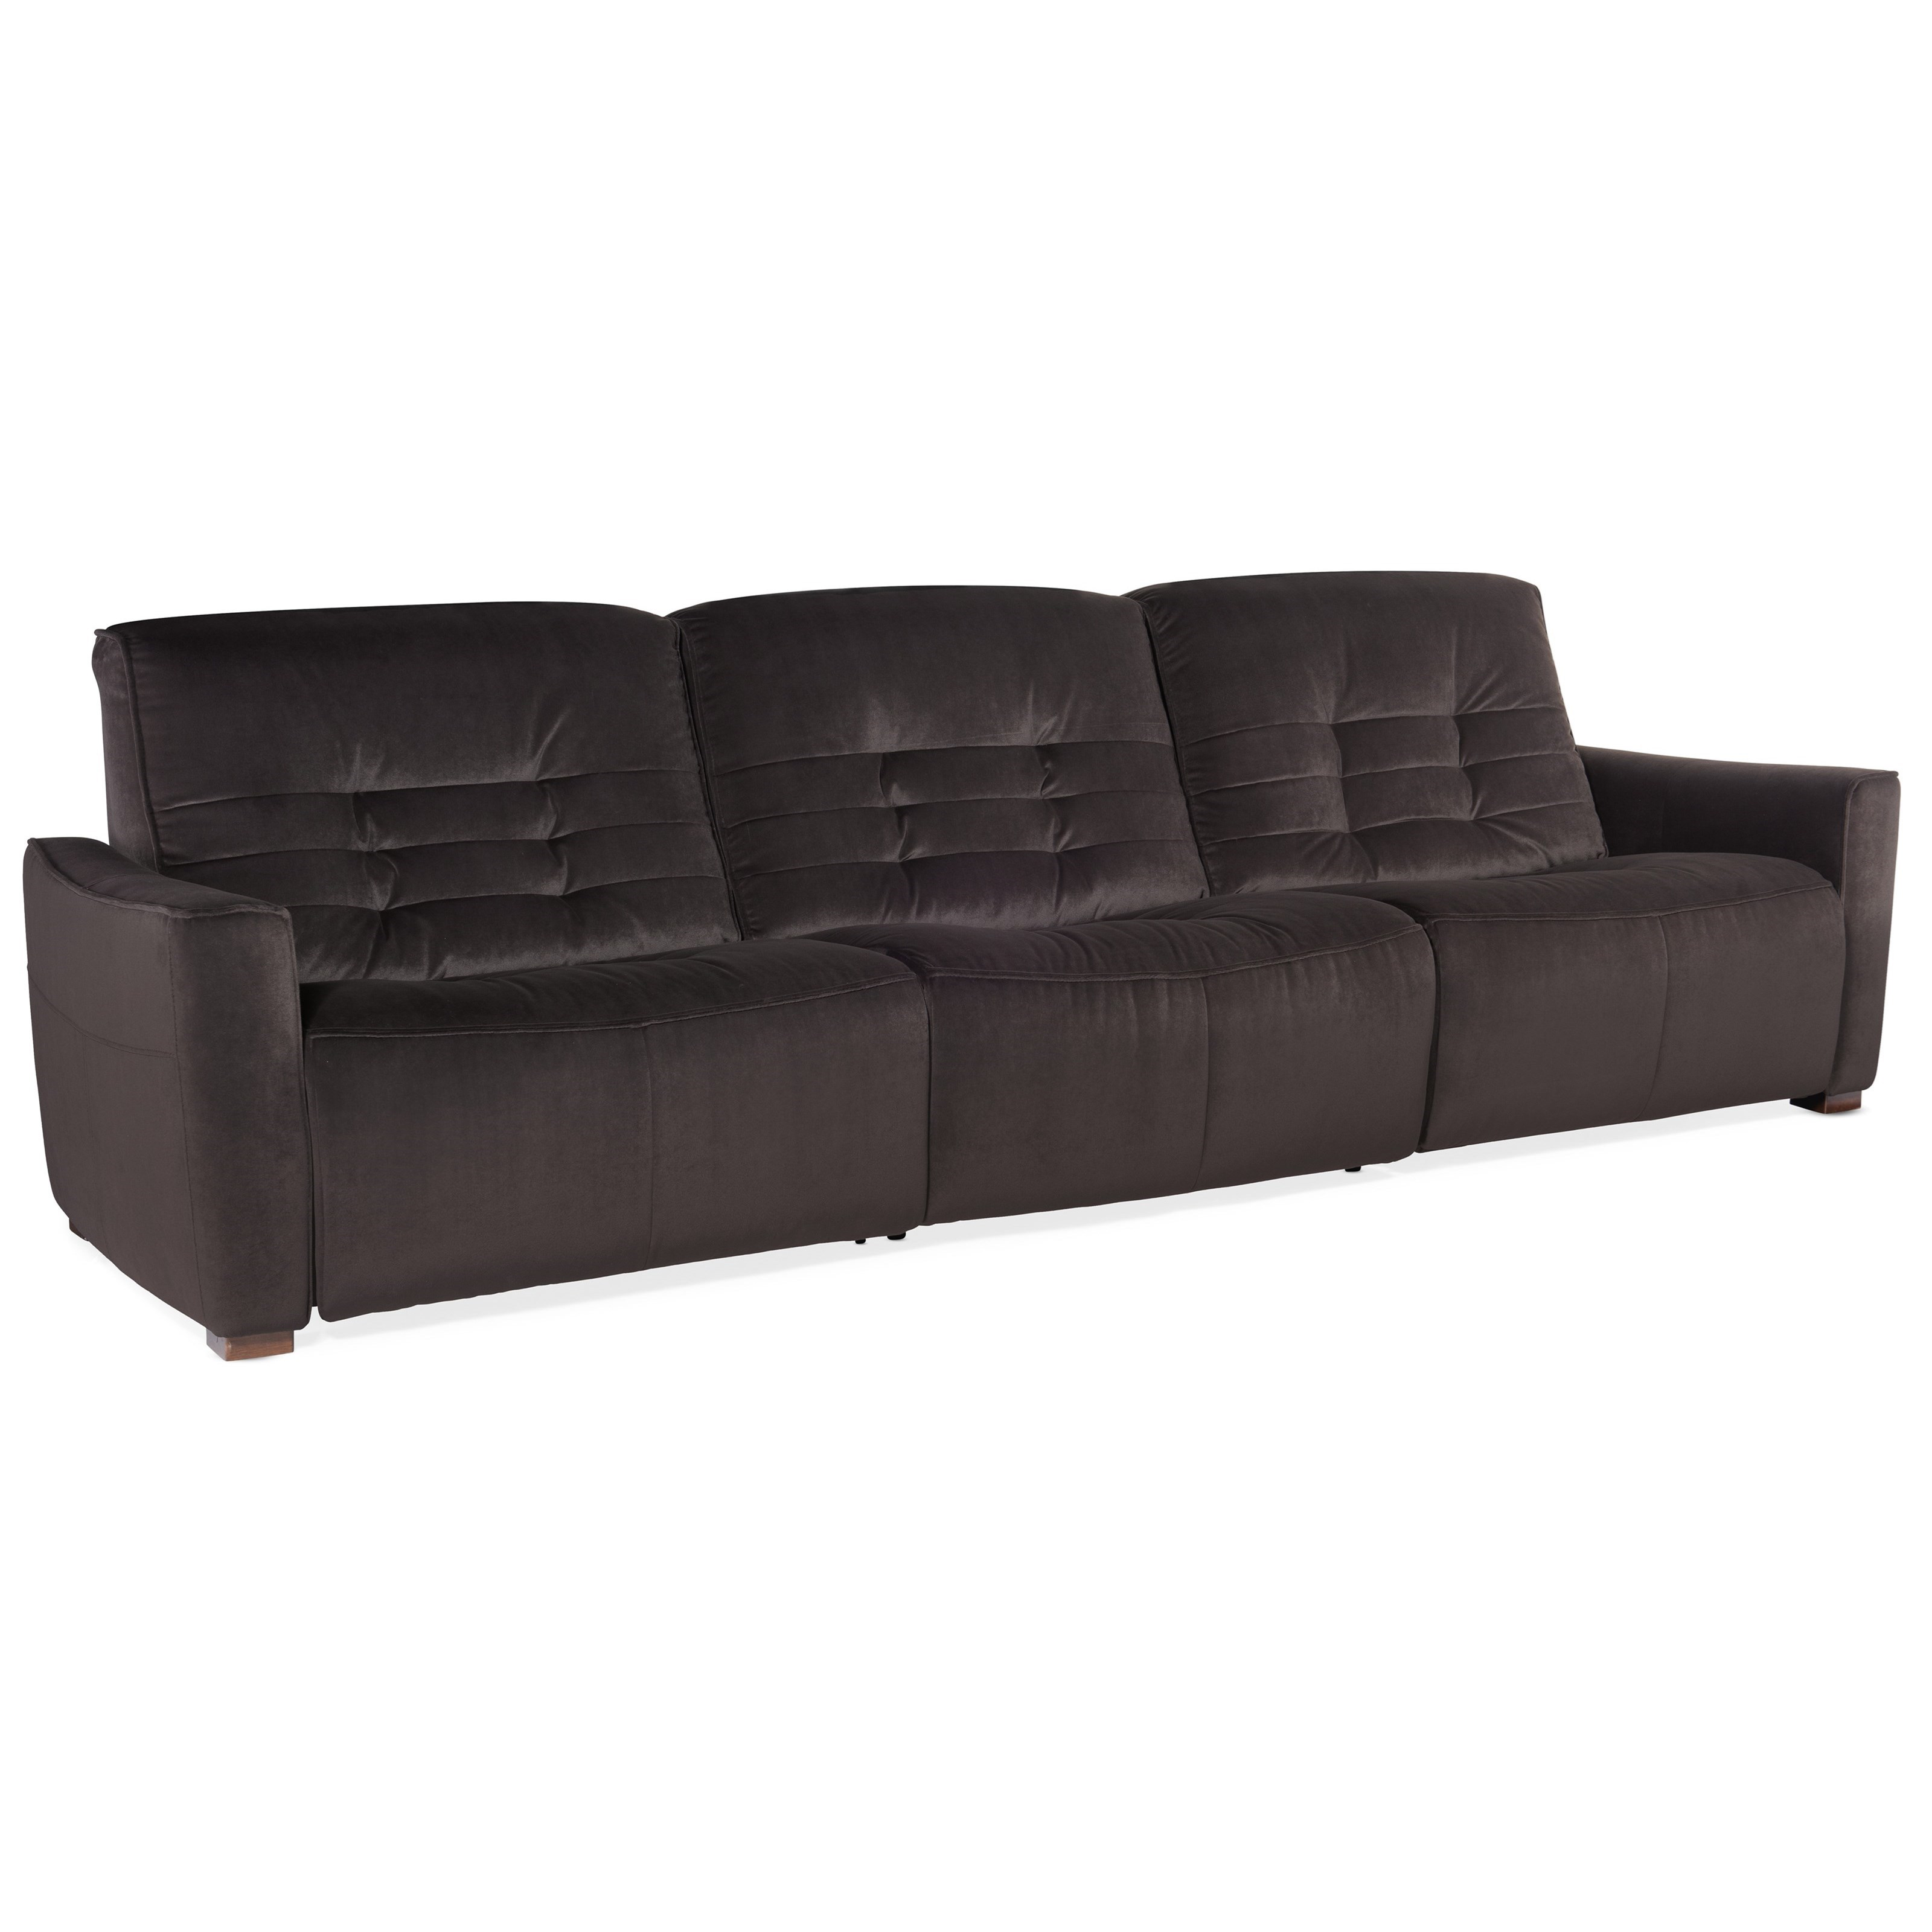 Reaux 3-Piece Sofa w/ 3 Power Recliners by Hooker Furniture at Baer's Furniture